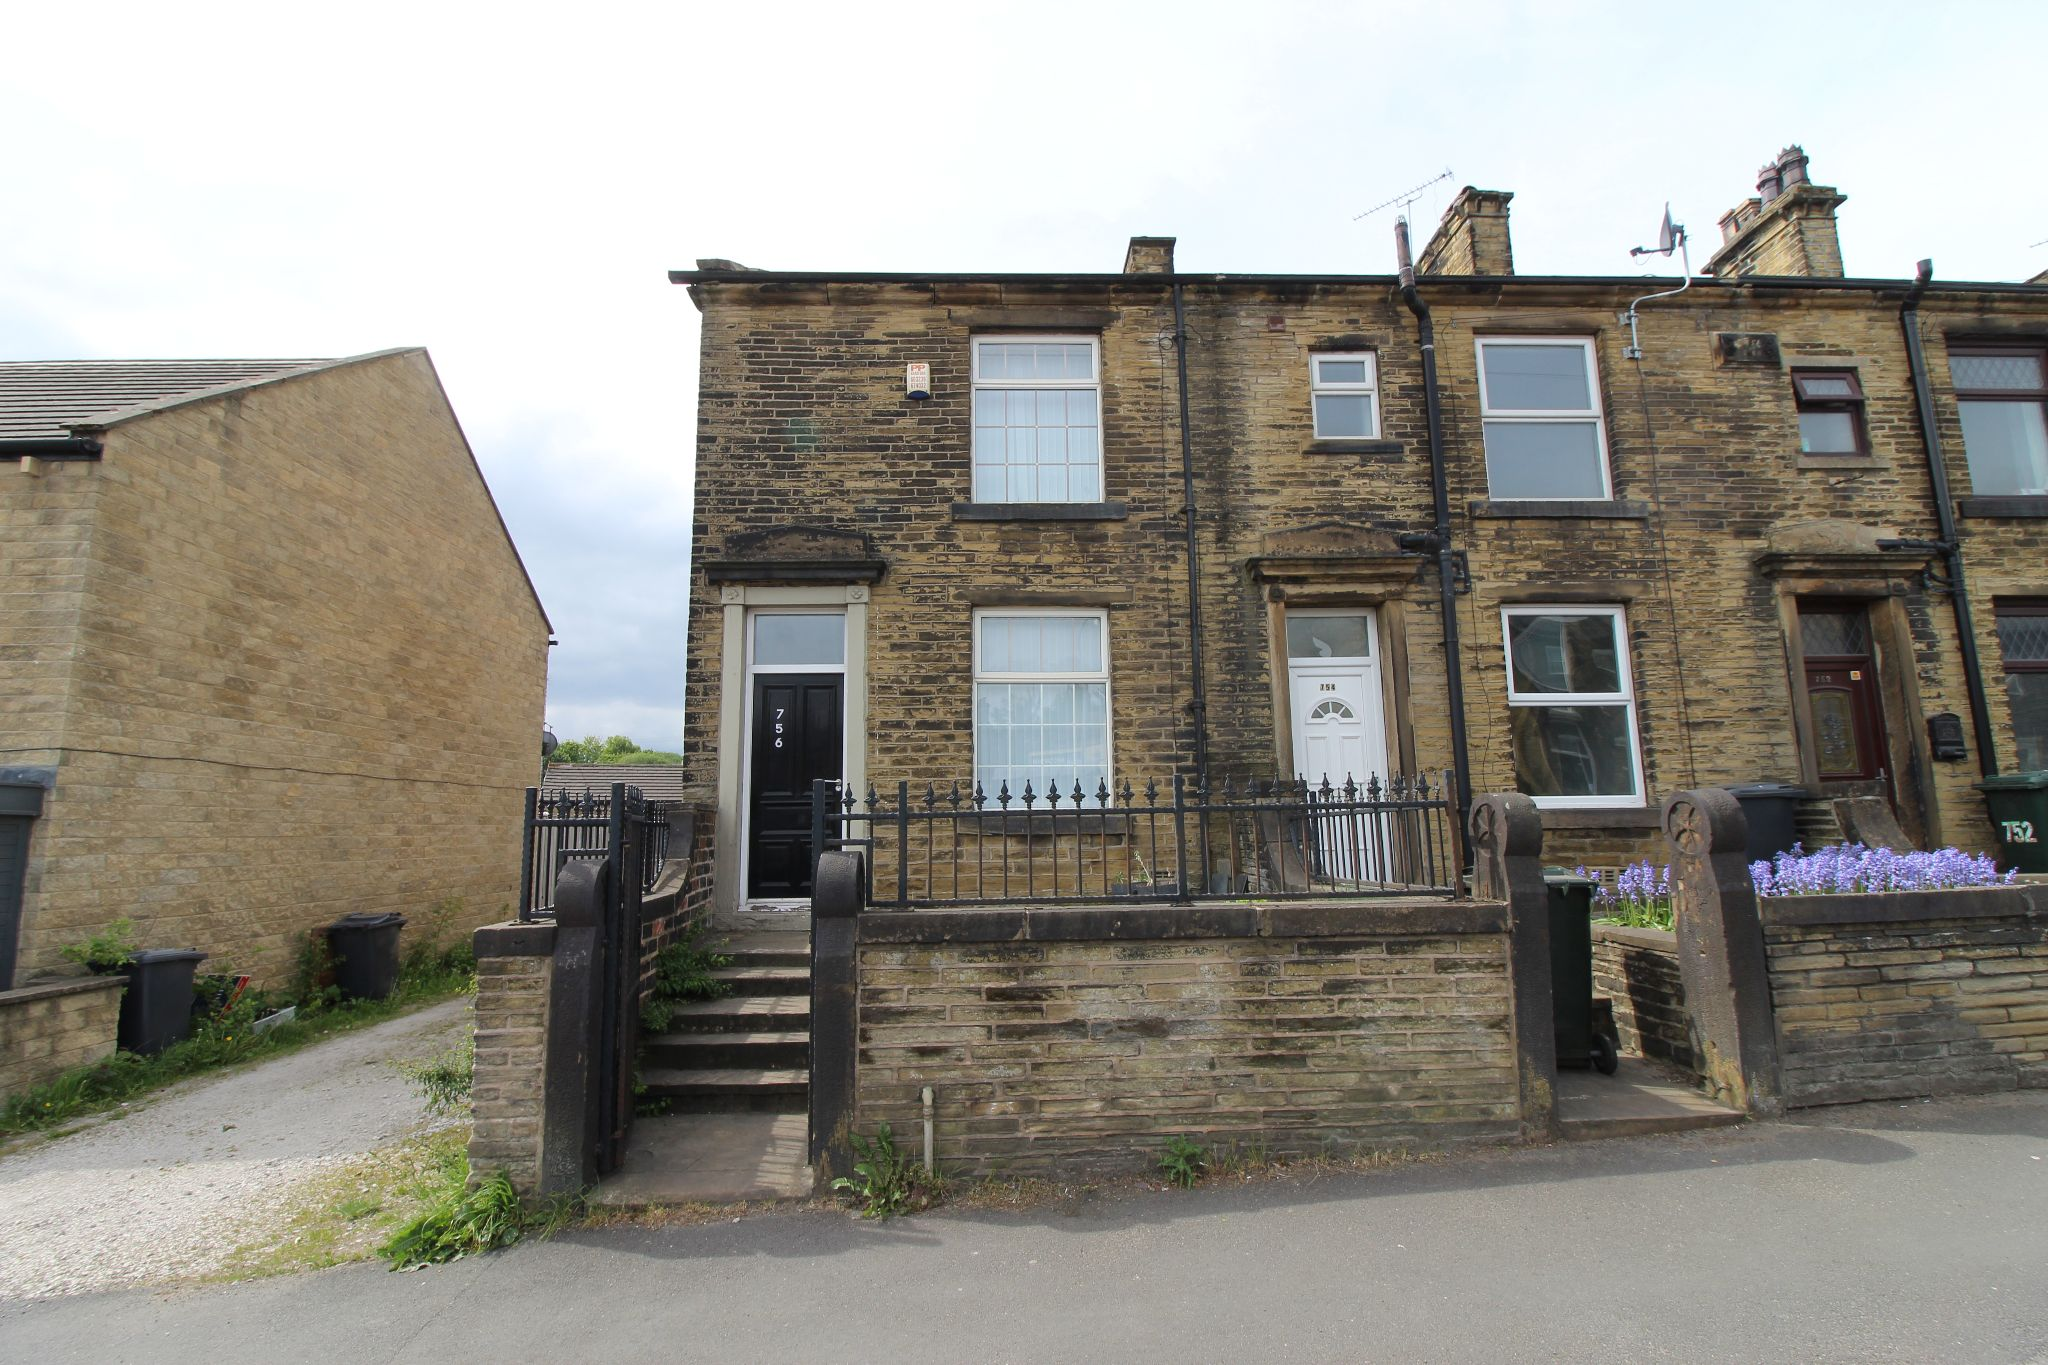 2 bedroom end terraced house Let in Bradford - Front elevation